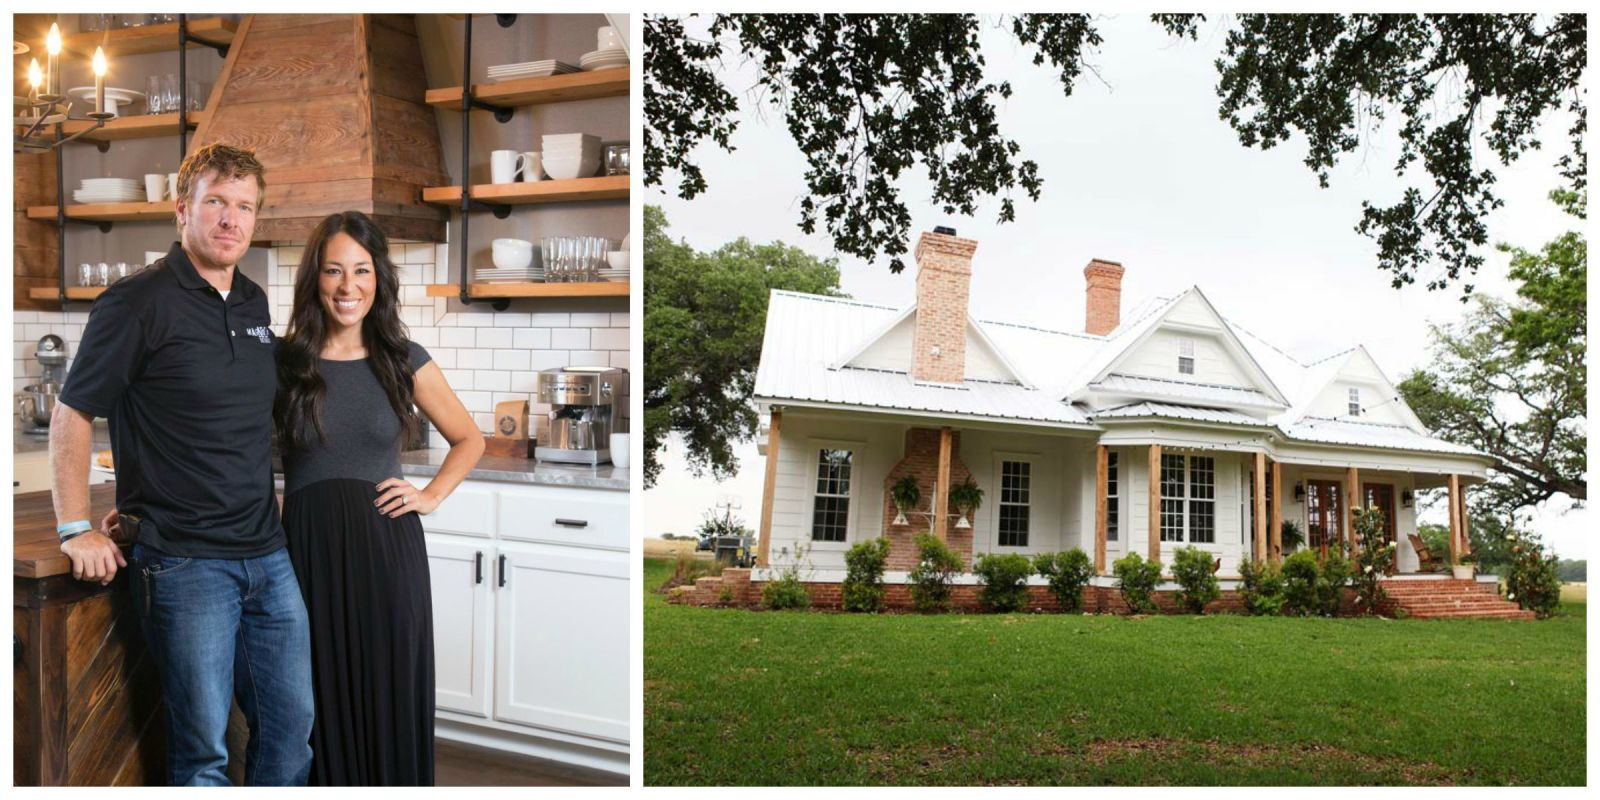 Chip and joanna gaines bed and breakfast home decorating for Chip and joanna gaines bed and breakfast